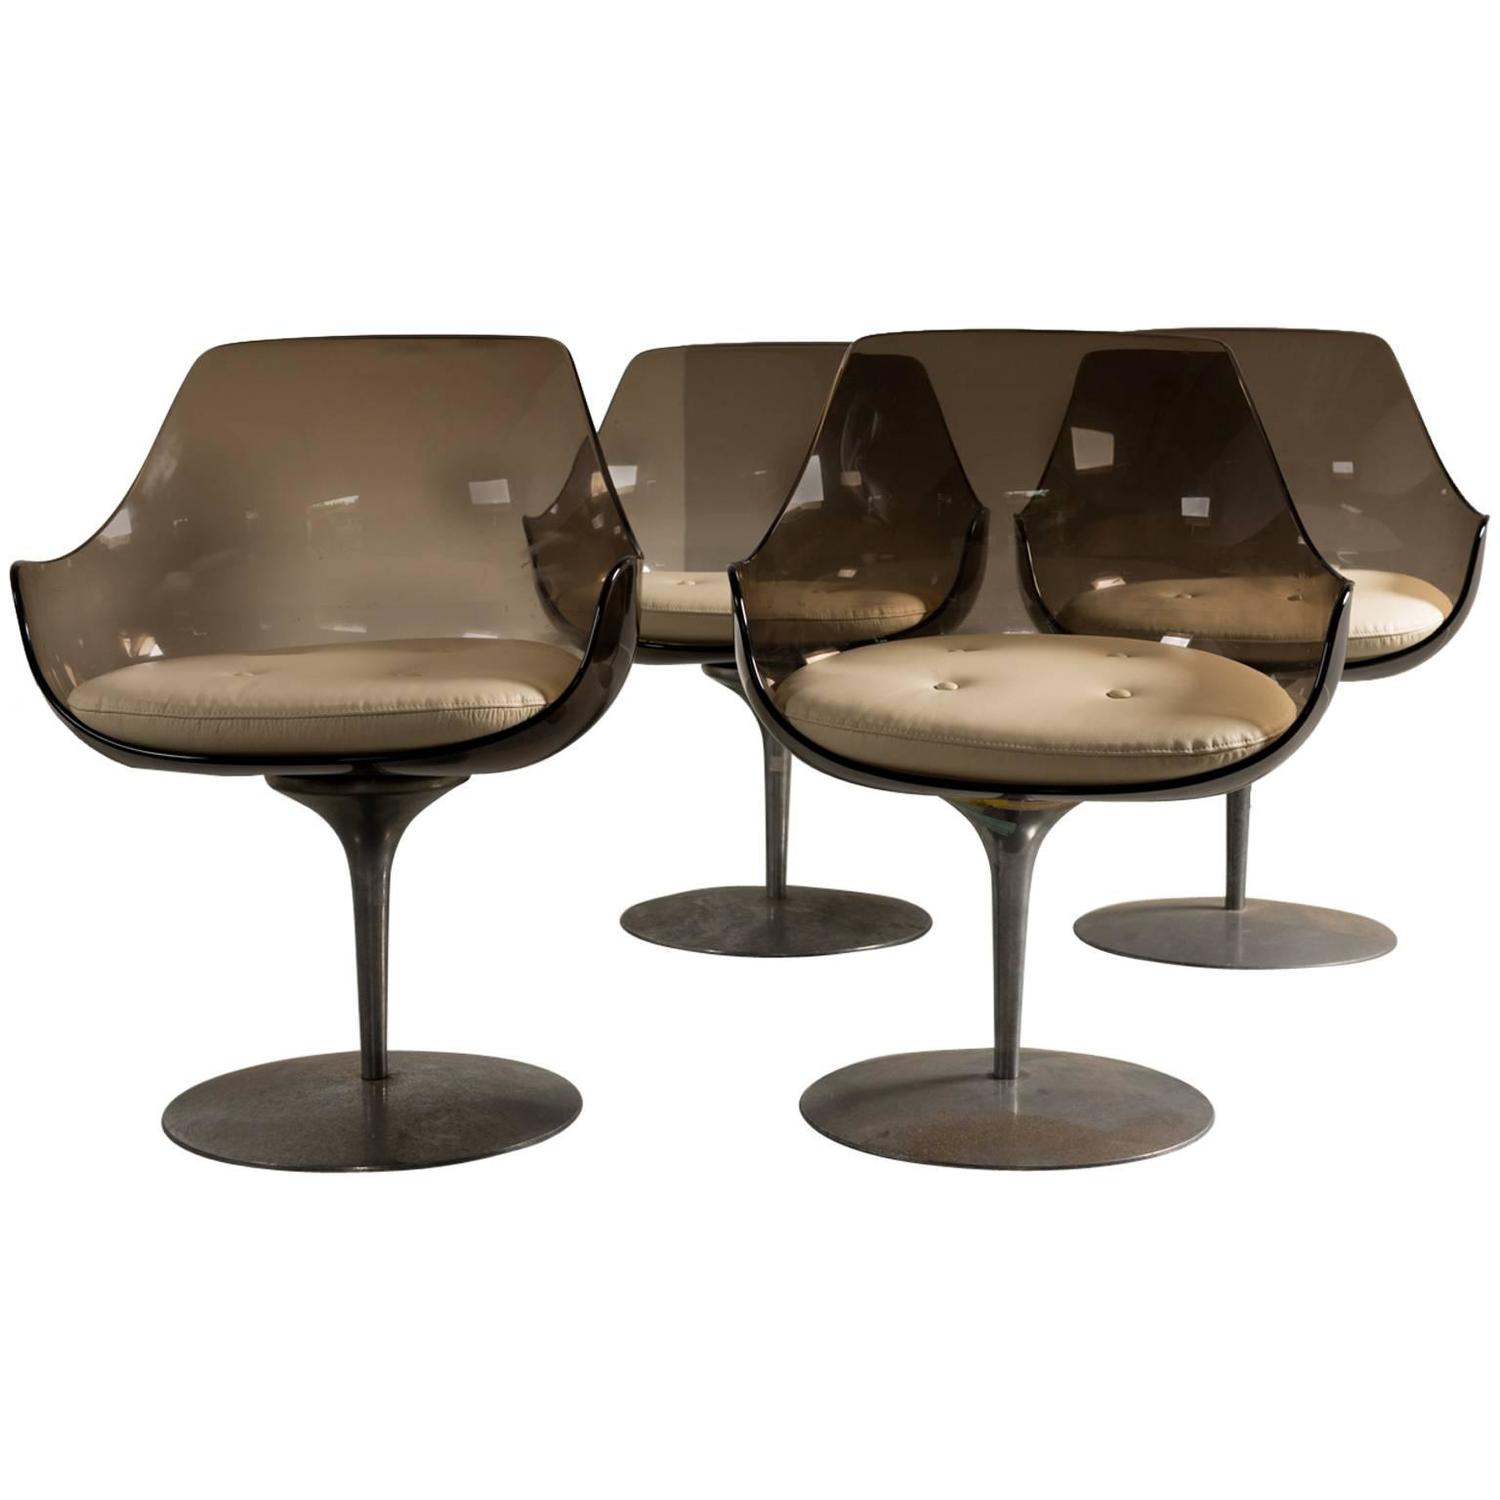 Champagne Chair Erwine And Estelle Champagne Chairs Set Of Four 1960s